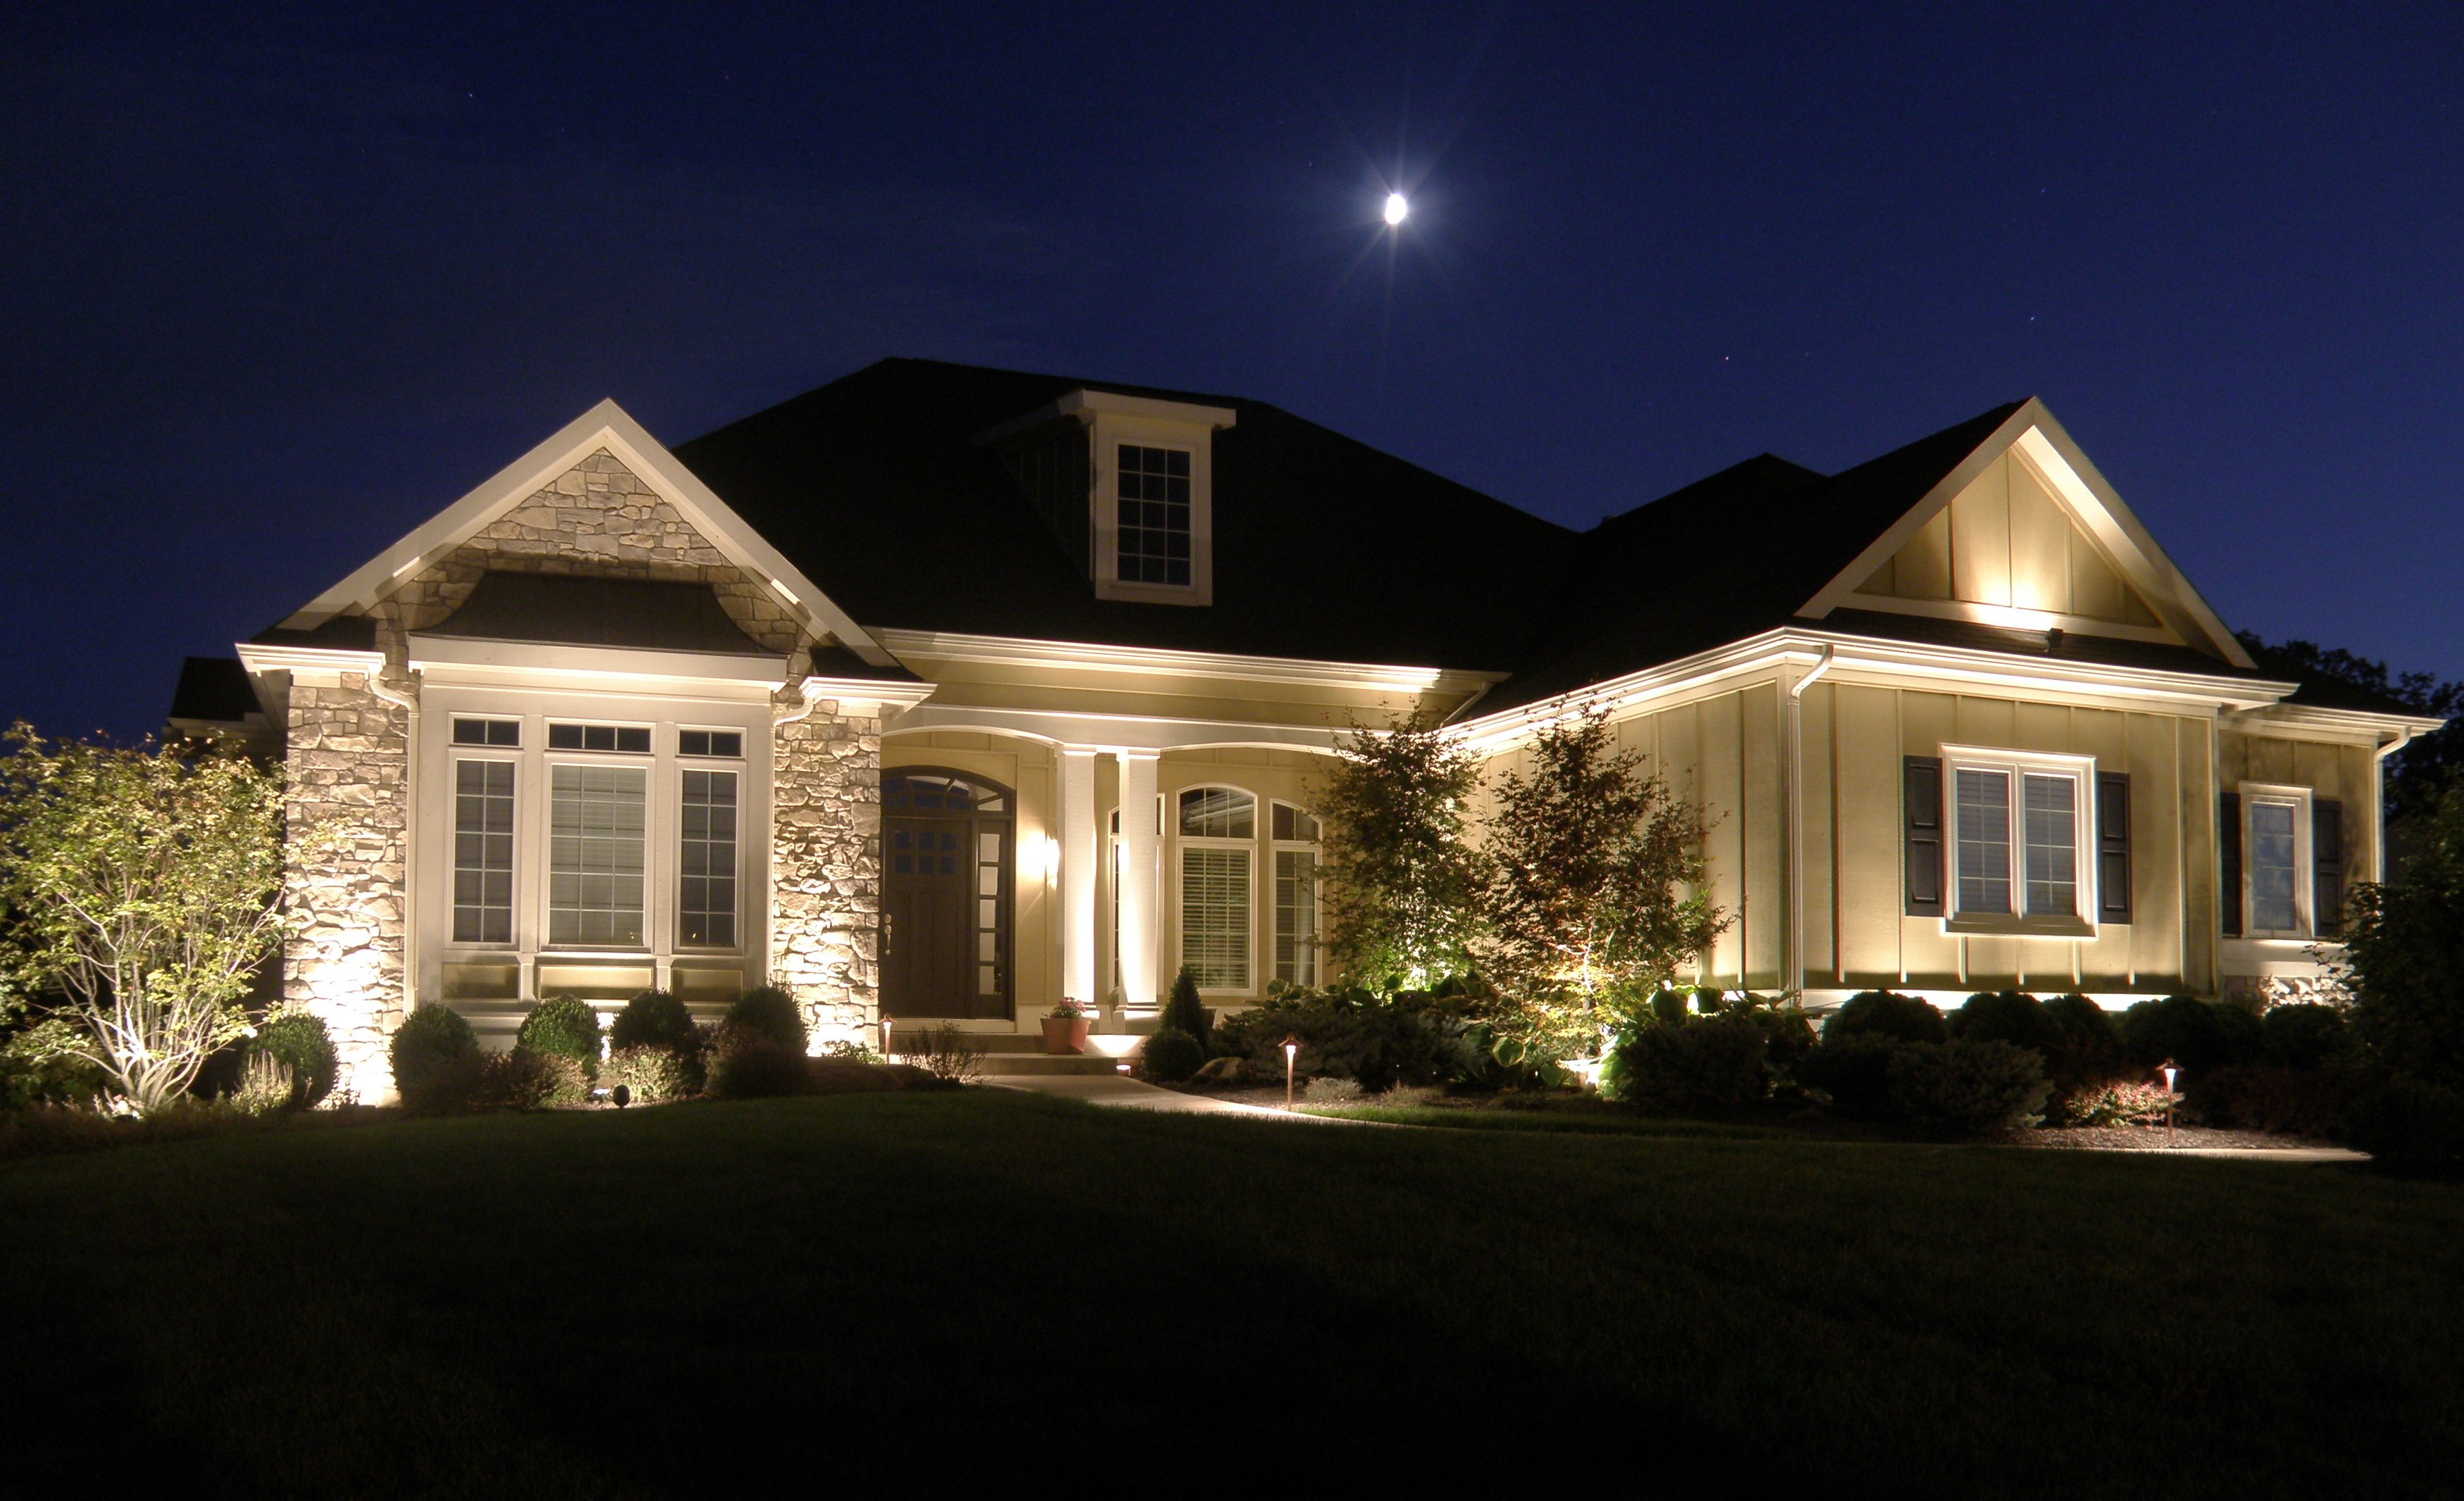 Tremendous Exterior Wall Washer Lights Justinbieberfan Info Largest Home Design Picture Inspirations Pitcheantrous